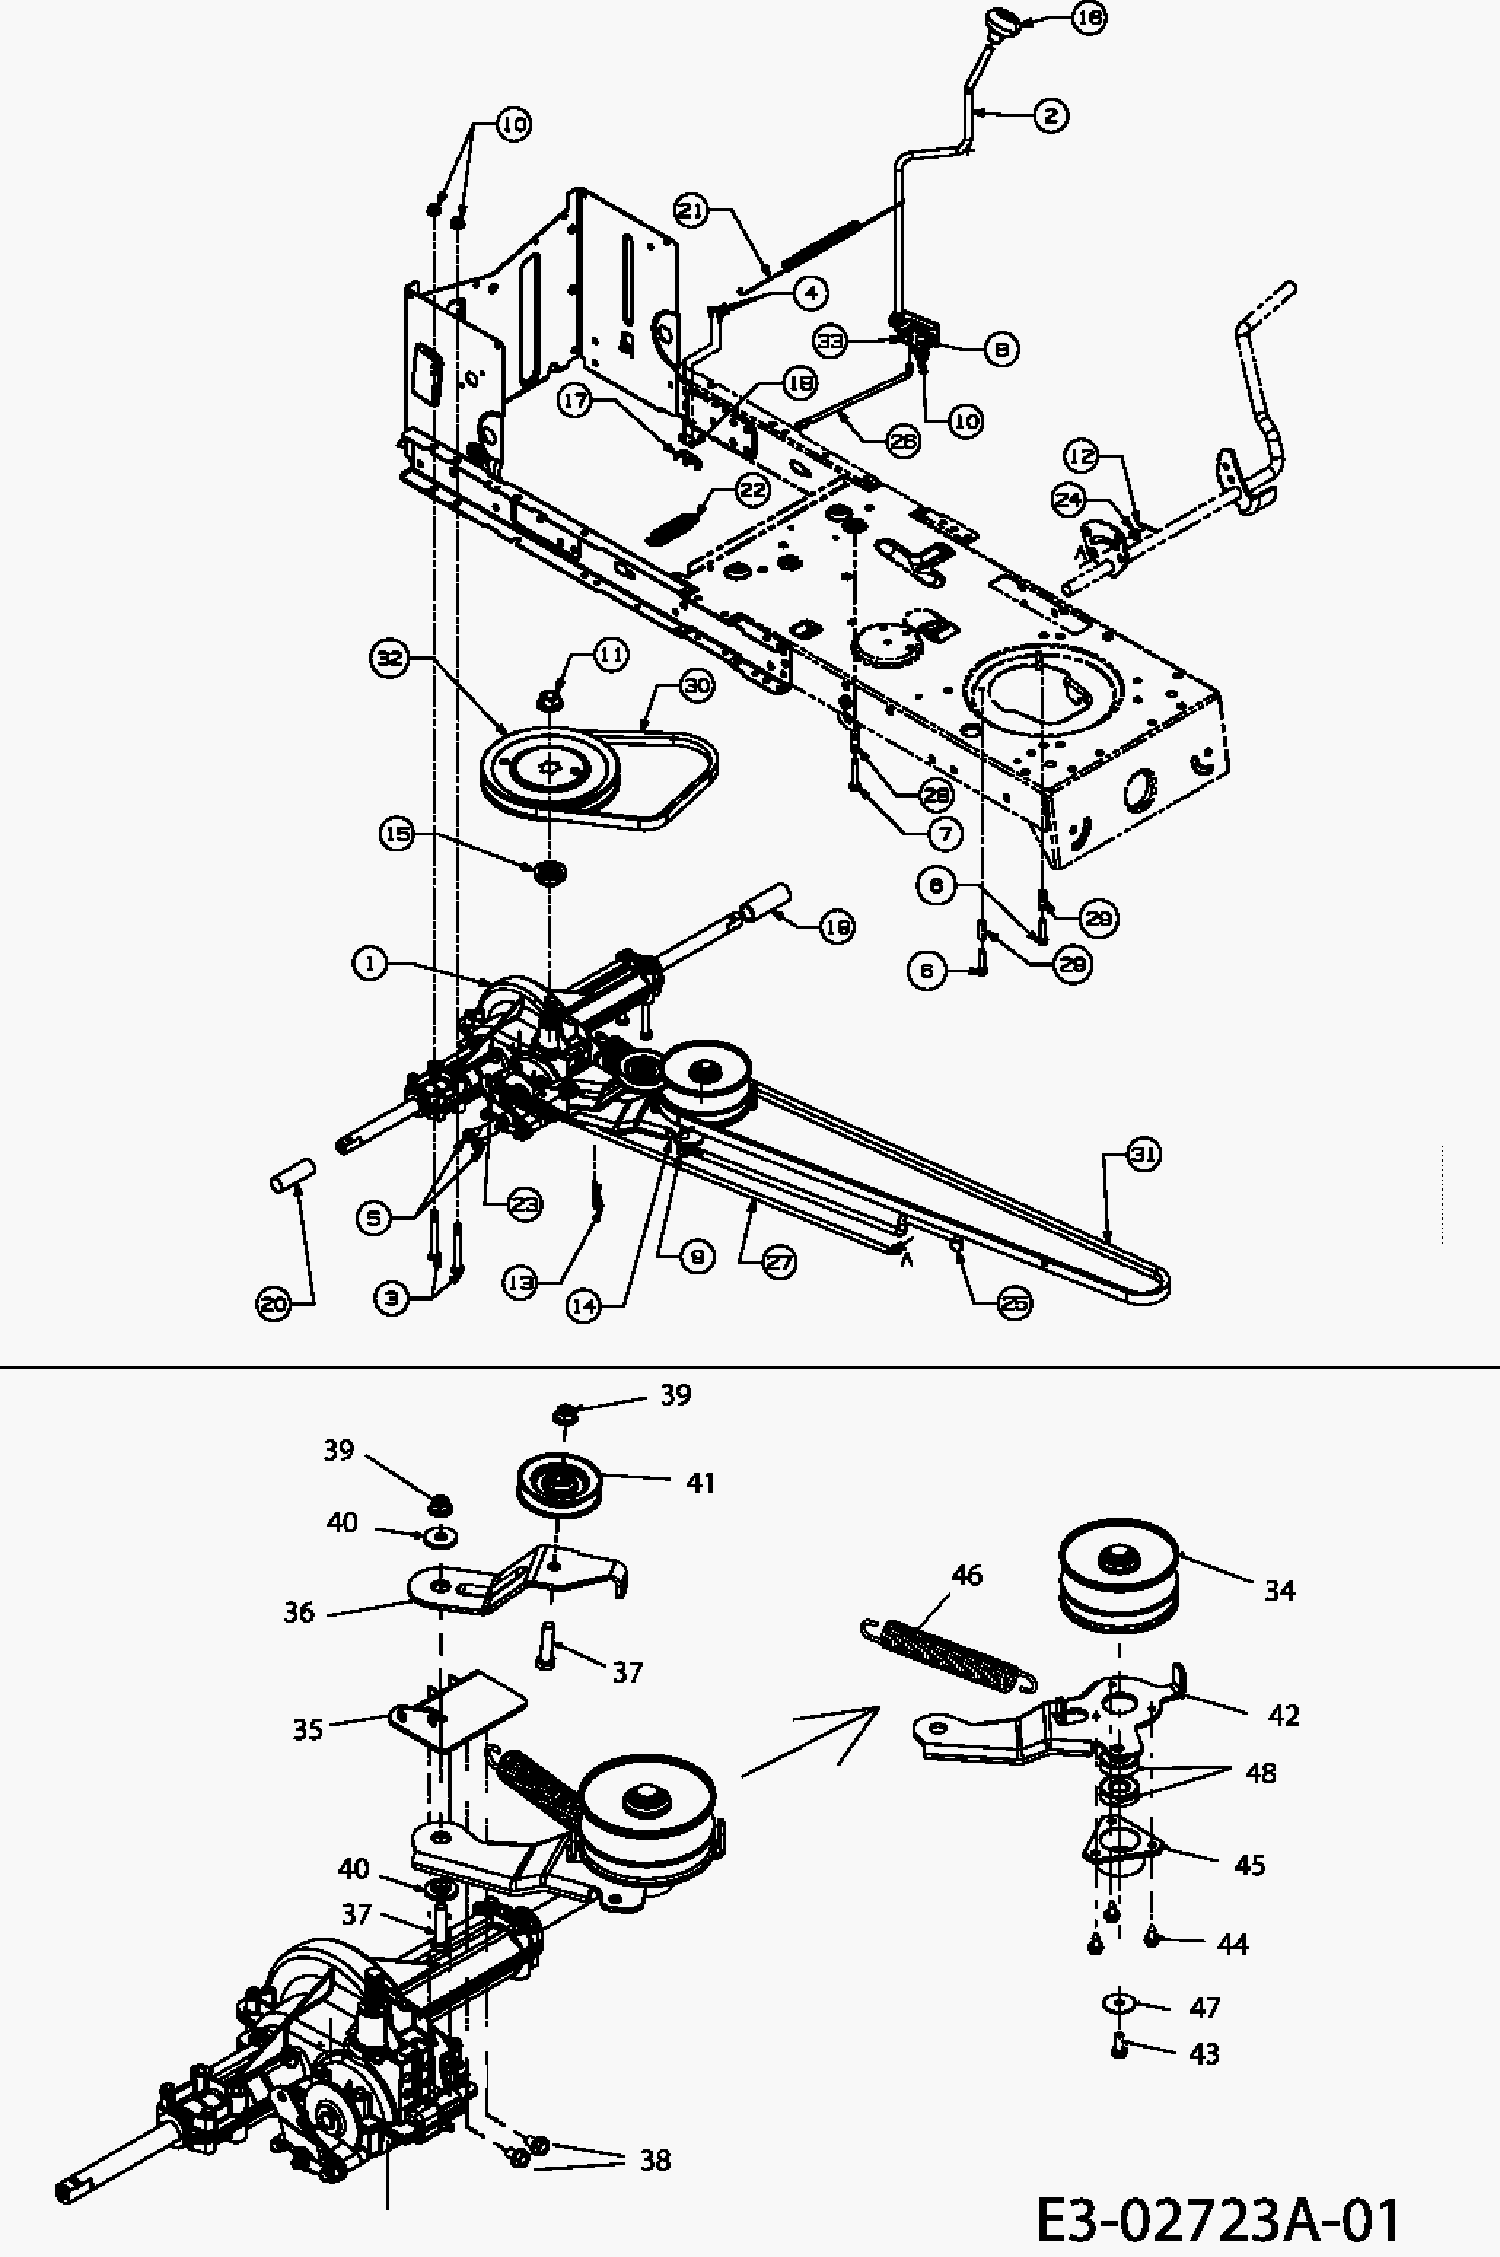 Huskee riding mower manual murray mower parts diagram murray 461007x92a parts list and